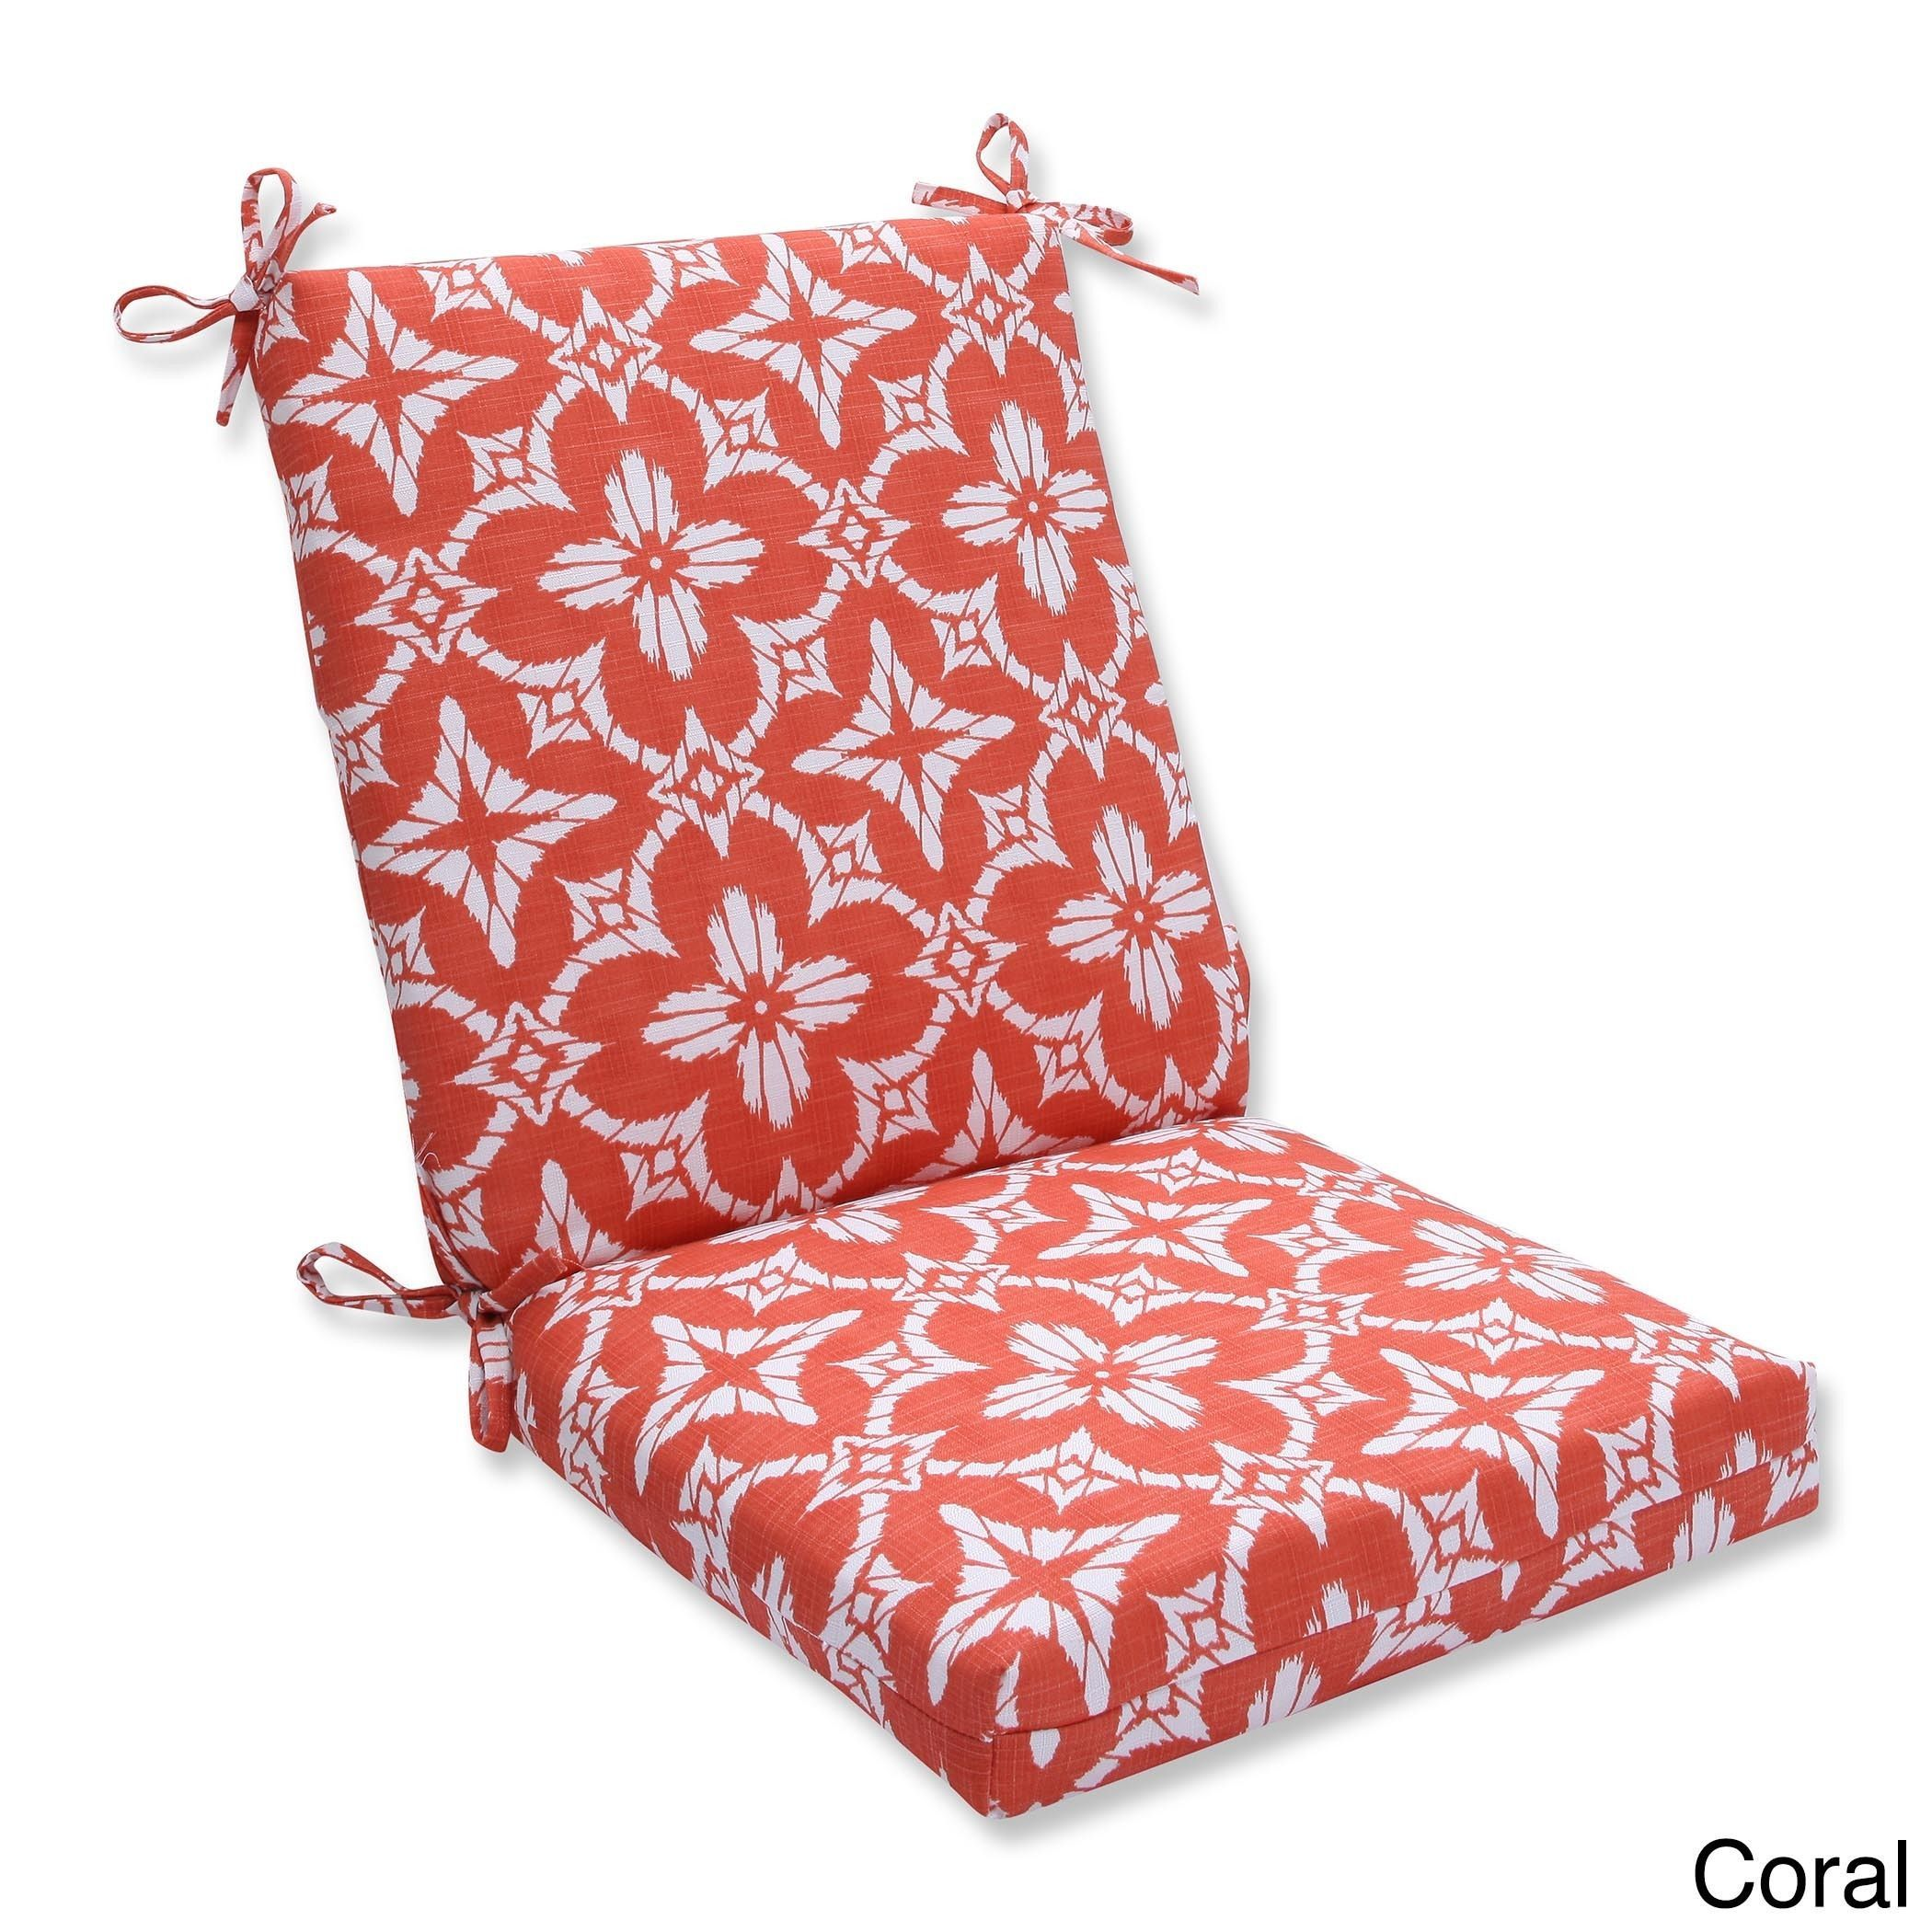 Pillow Perfect Outdoor Indoor Aspidoras Squared Corners Chair Cushion Overstock Com Shopping The Best Deals On Outdoor Cushions Pillows Outdoor Dining Chair Cushions Chair Cushions Walmart Dining Chair Cushions